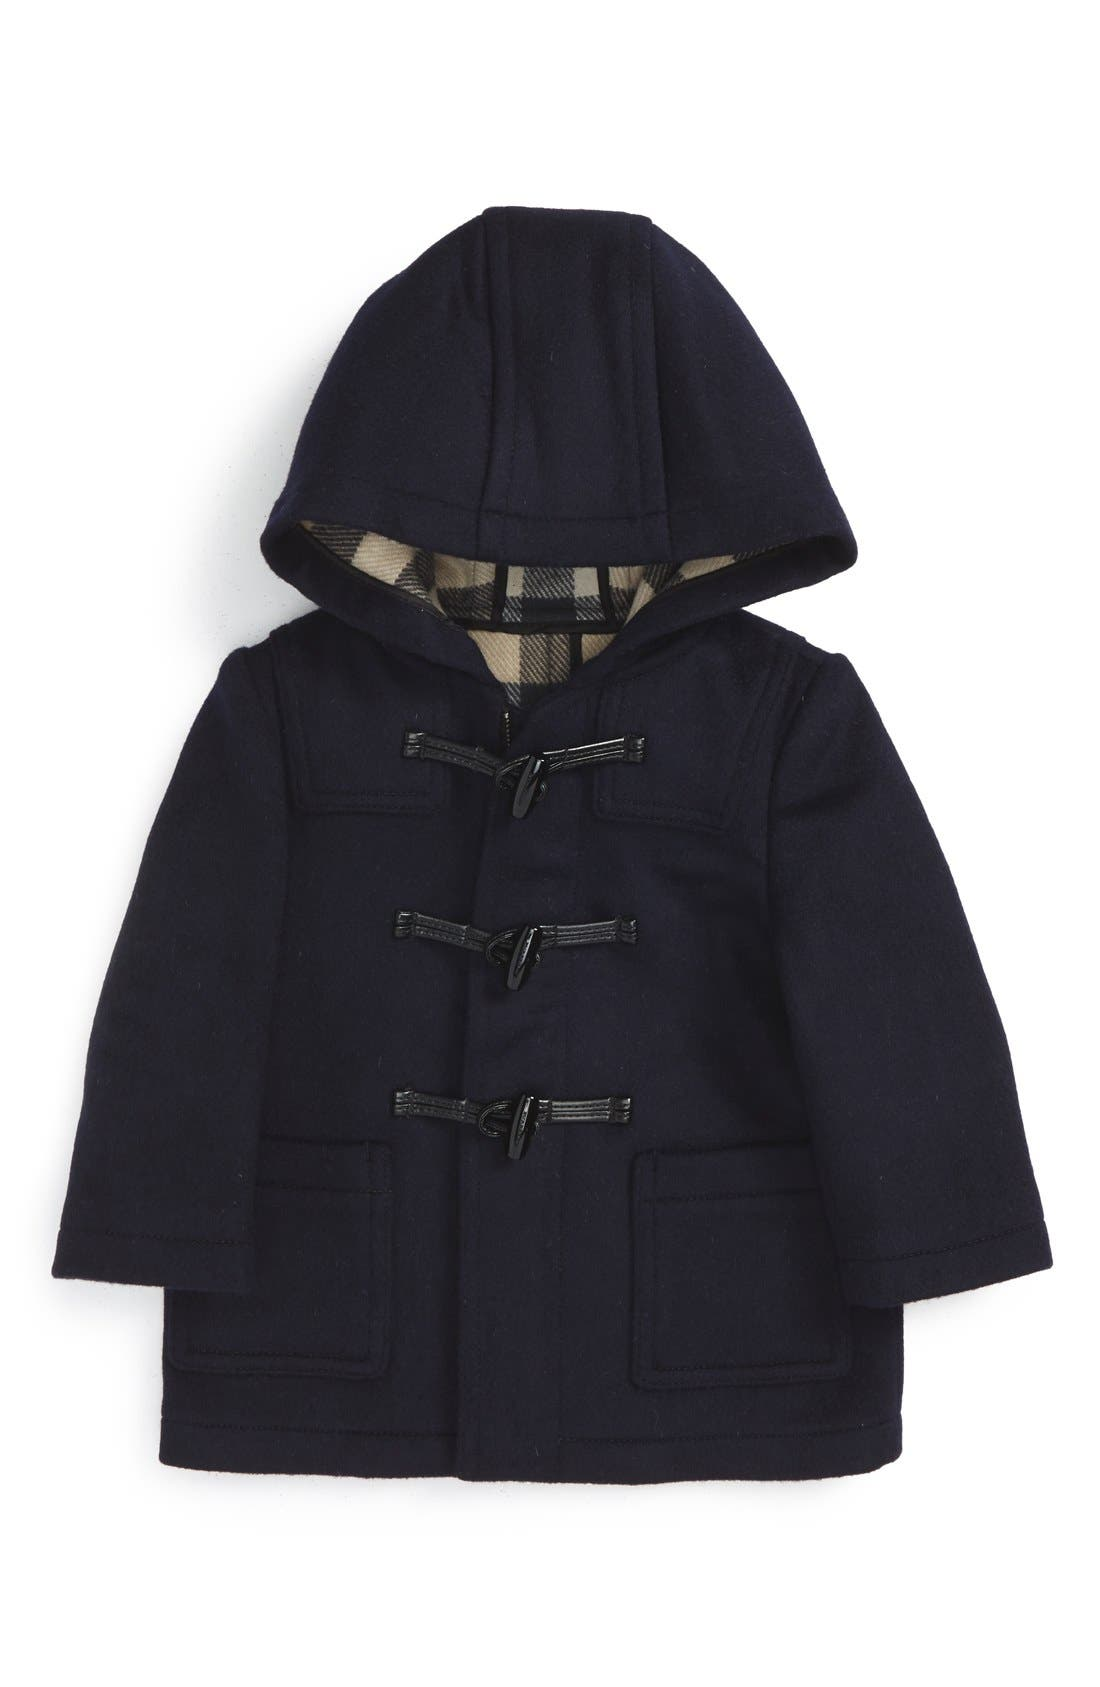 Alternate Image 1 Selected - Burberry Brogan Hooded Wool Toggle Coat (Baby Boys)